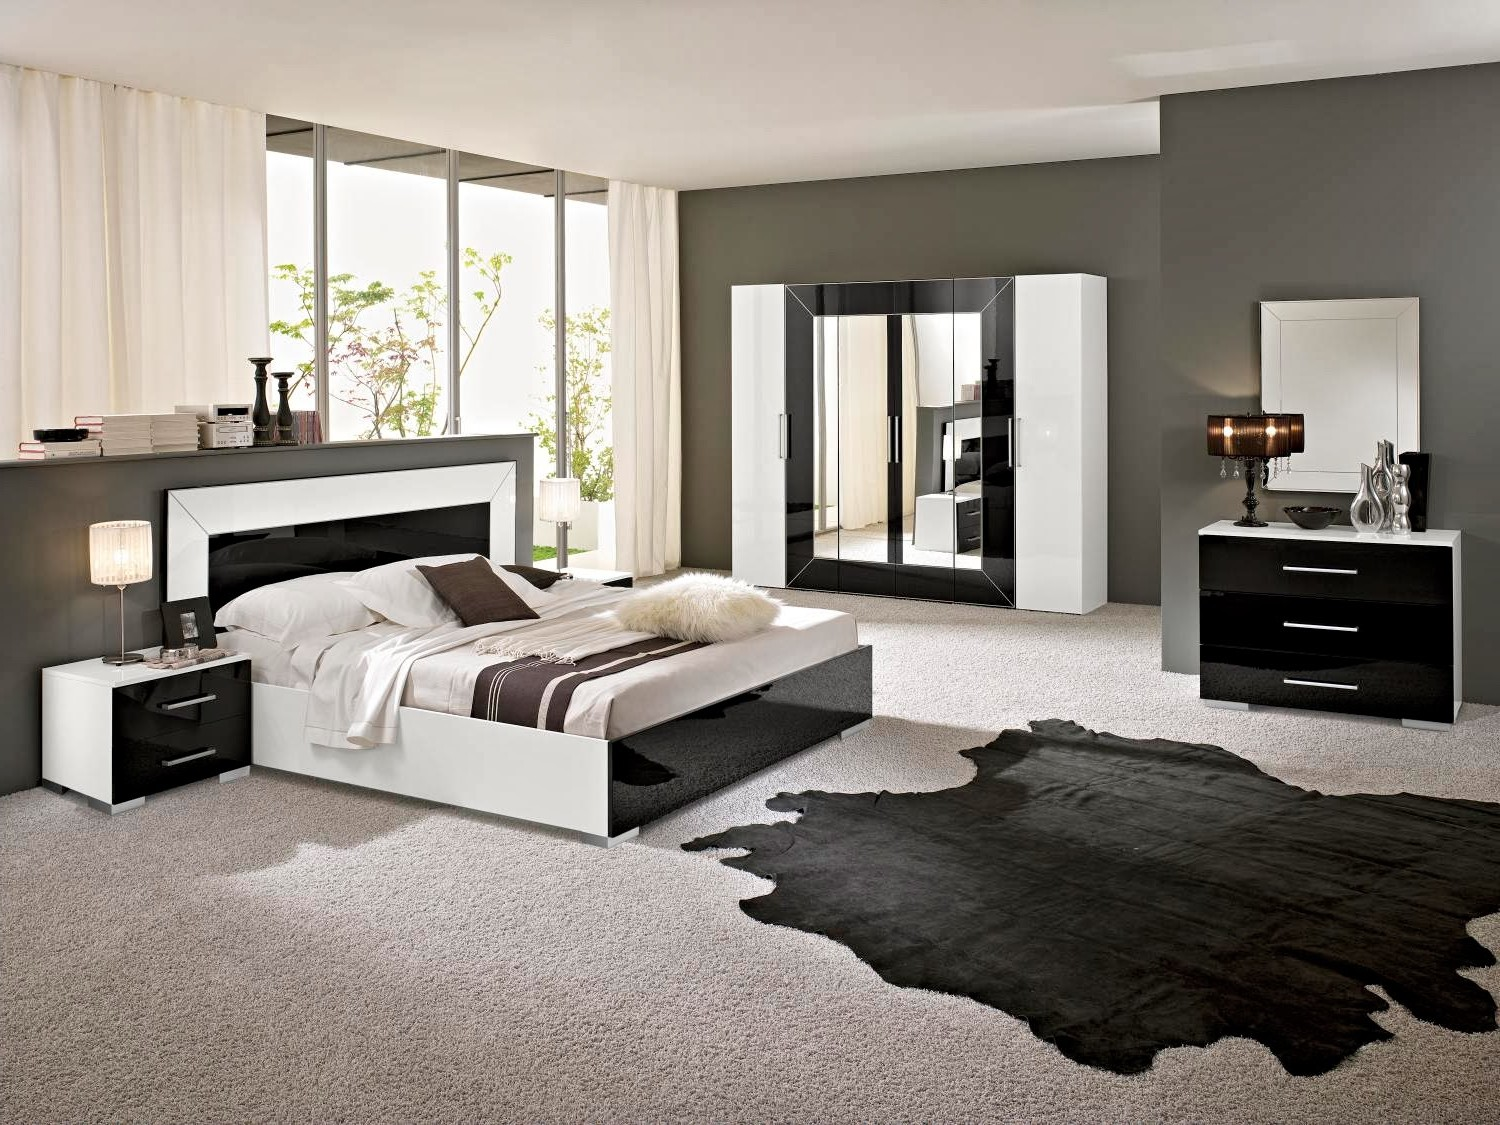 Chambre coucher adulte moderne vendre chambre id es for Chambre a coucher moderne